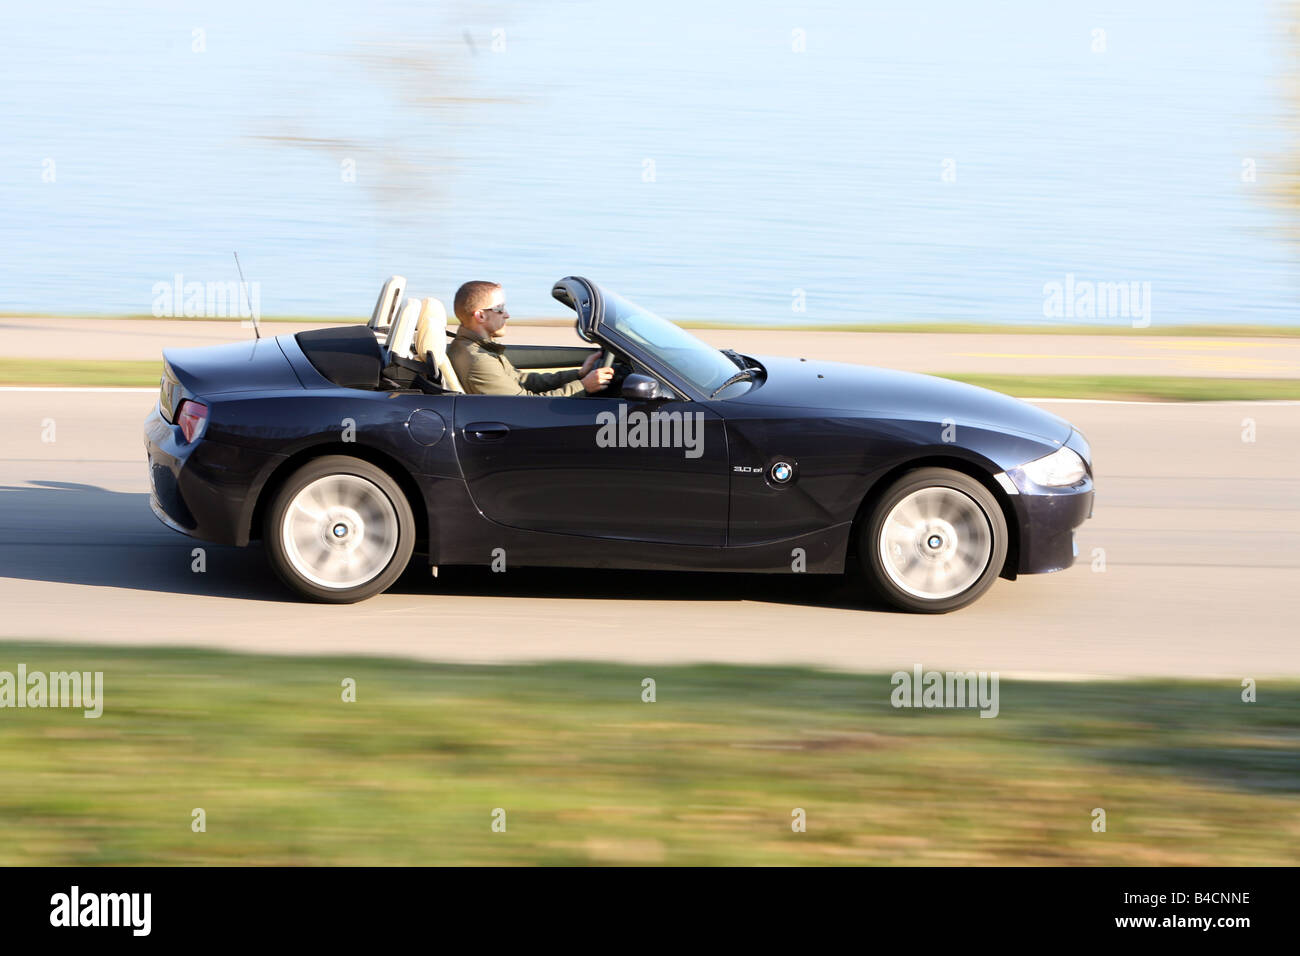 Bmw Z4 3 0 Si Roadster Model Year 2006 Black Driving